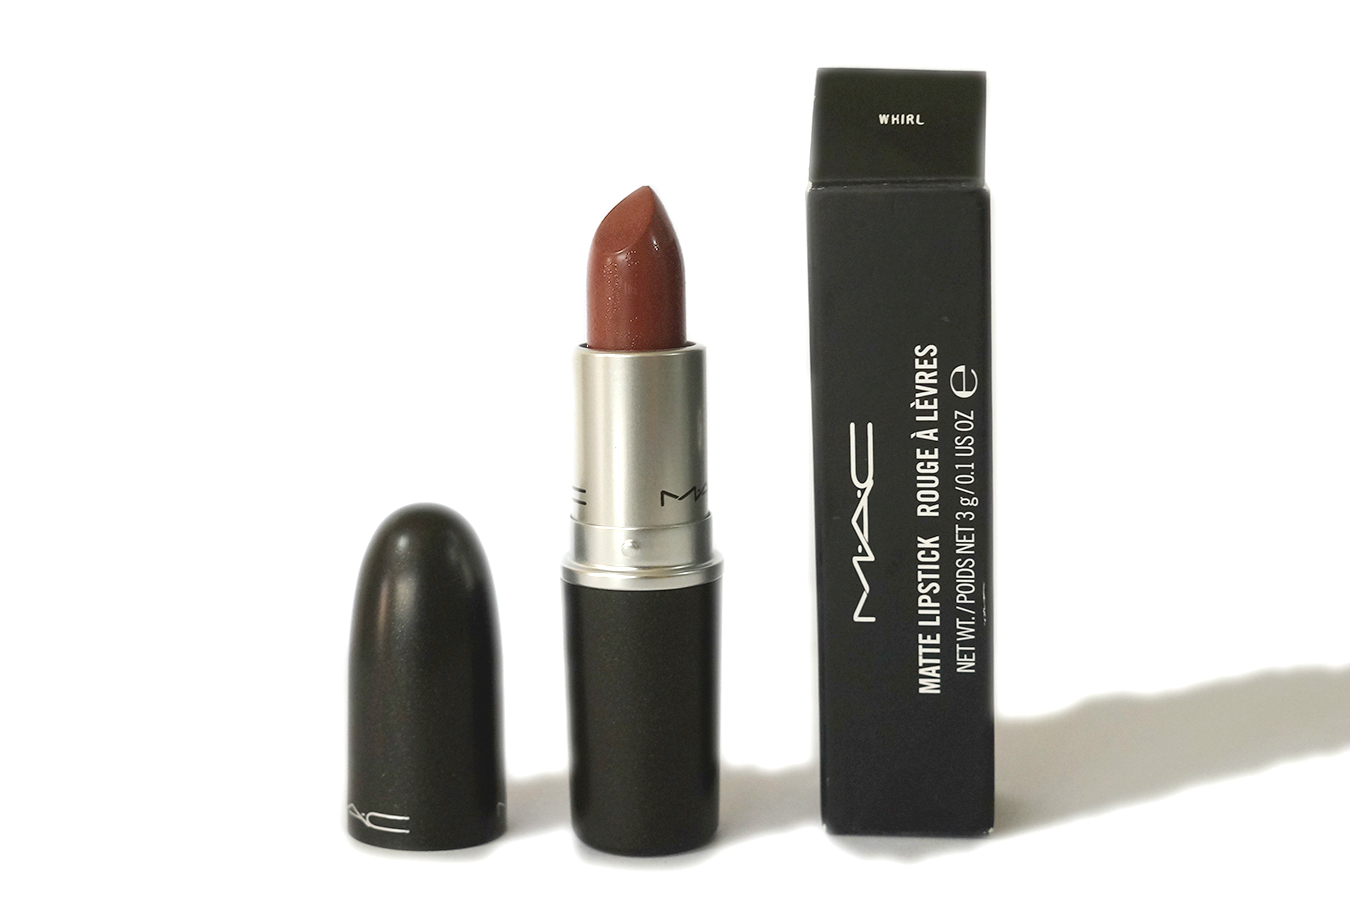 Eccezionale MAC Lipstick in Whirl (Matte) | Review, Swatches, Photos - Jello Beans PK95